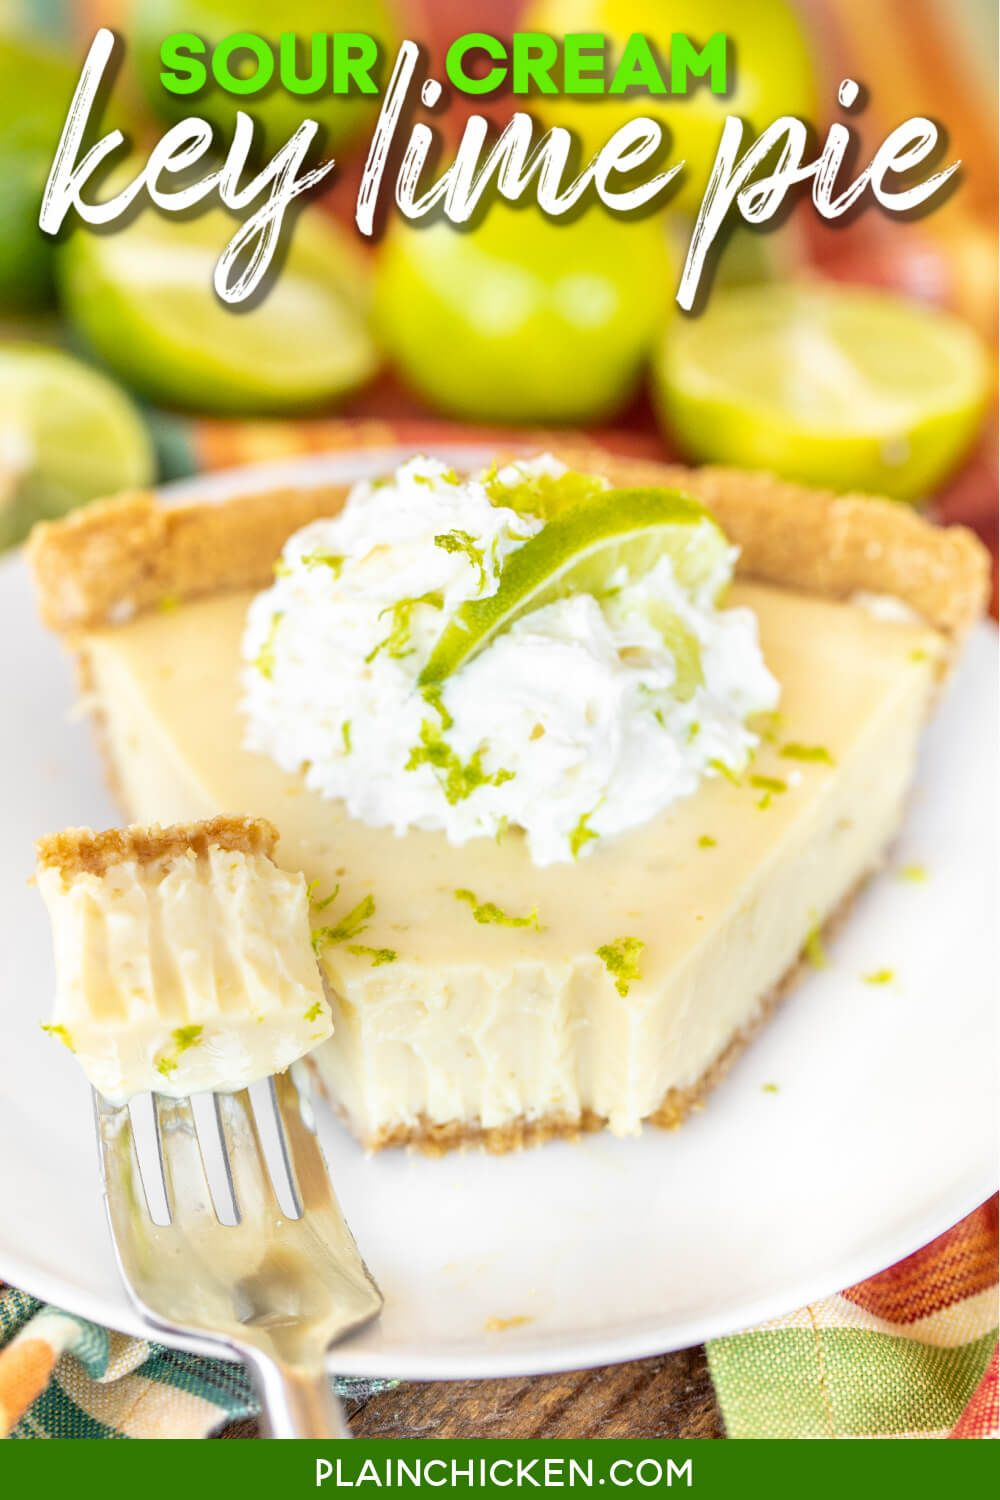 Sour Cream Key Lime Pie To Die For Delicious So Simple And It Tastes Amazing We Made Two Of These Pi In 2020 Lime Pie Recipe Best Key Lime Pie Keylime Pie